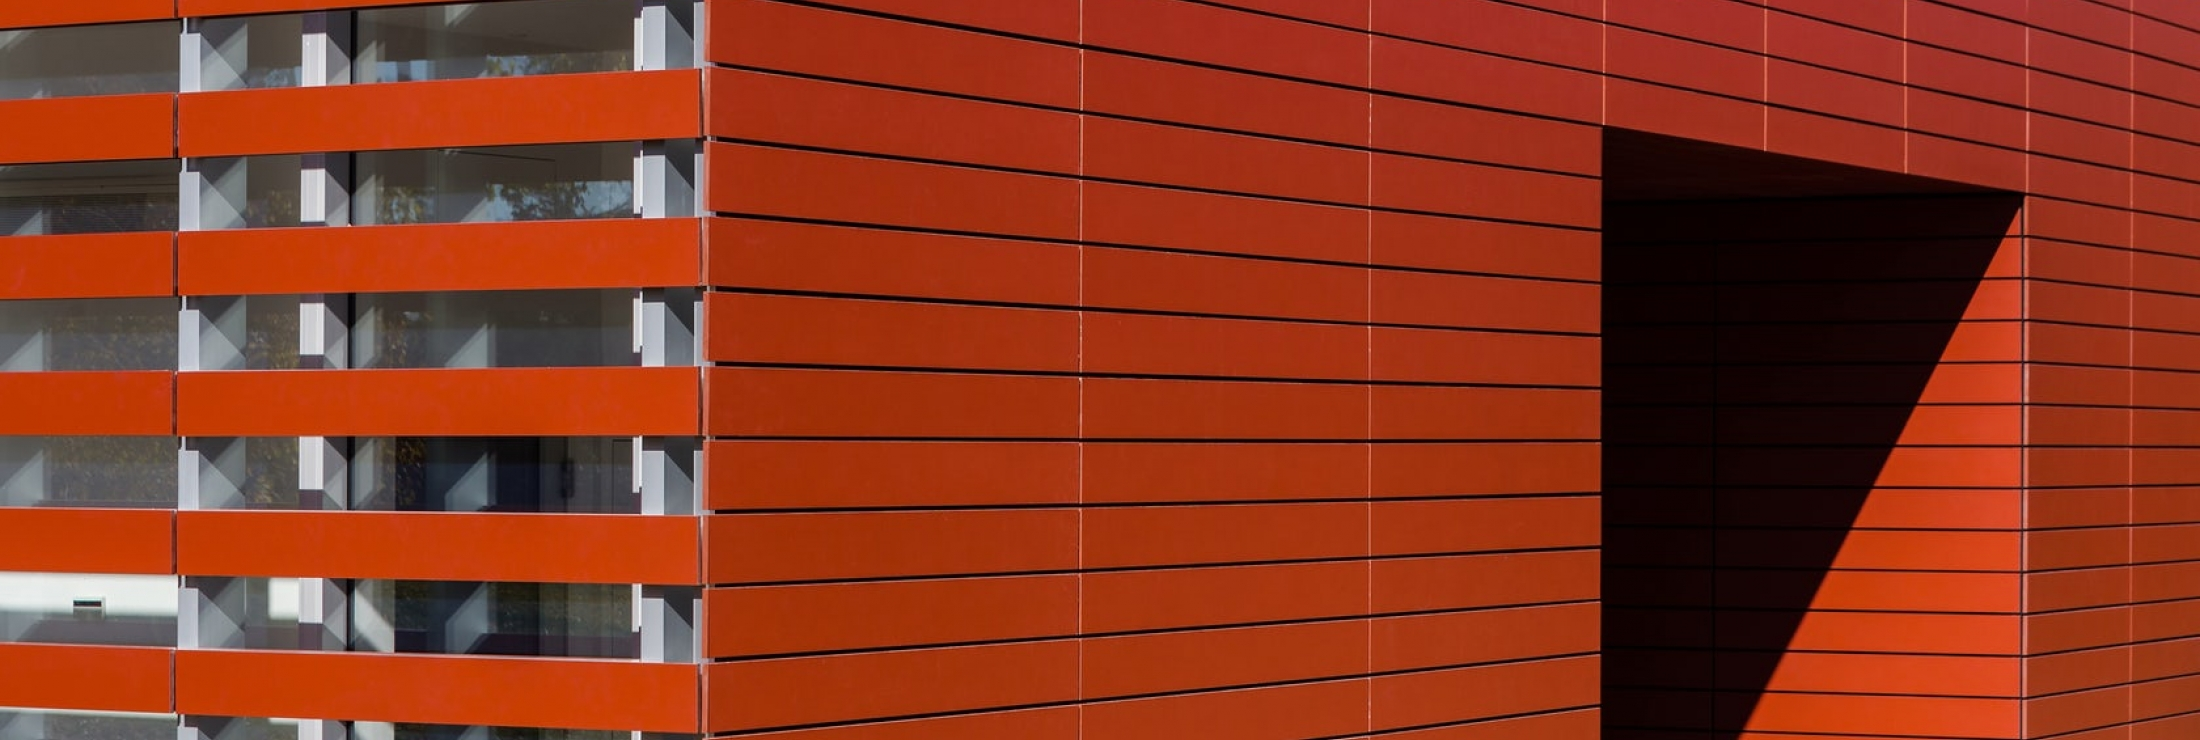 Swisspearl Fiber Cement Linearis Cladding Red Barn